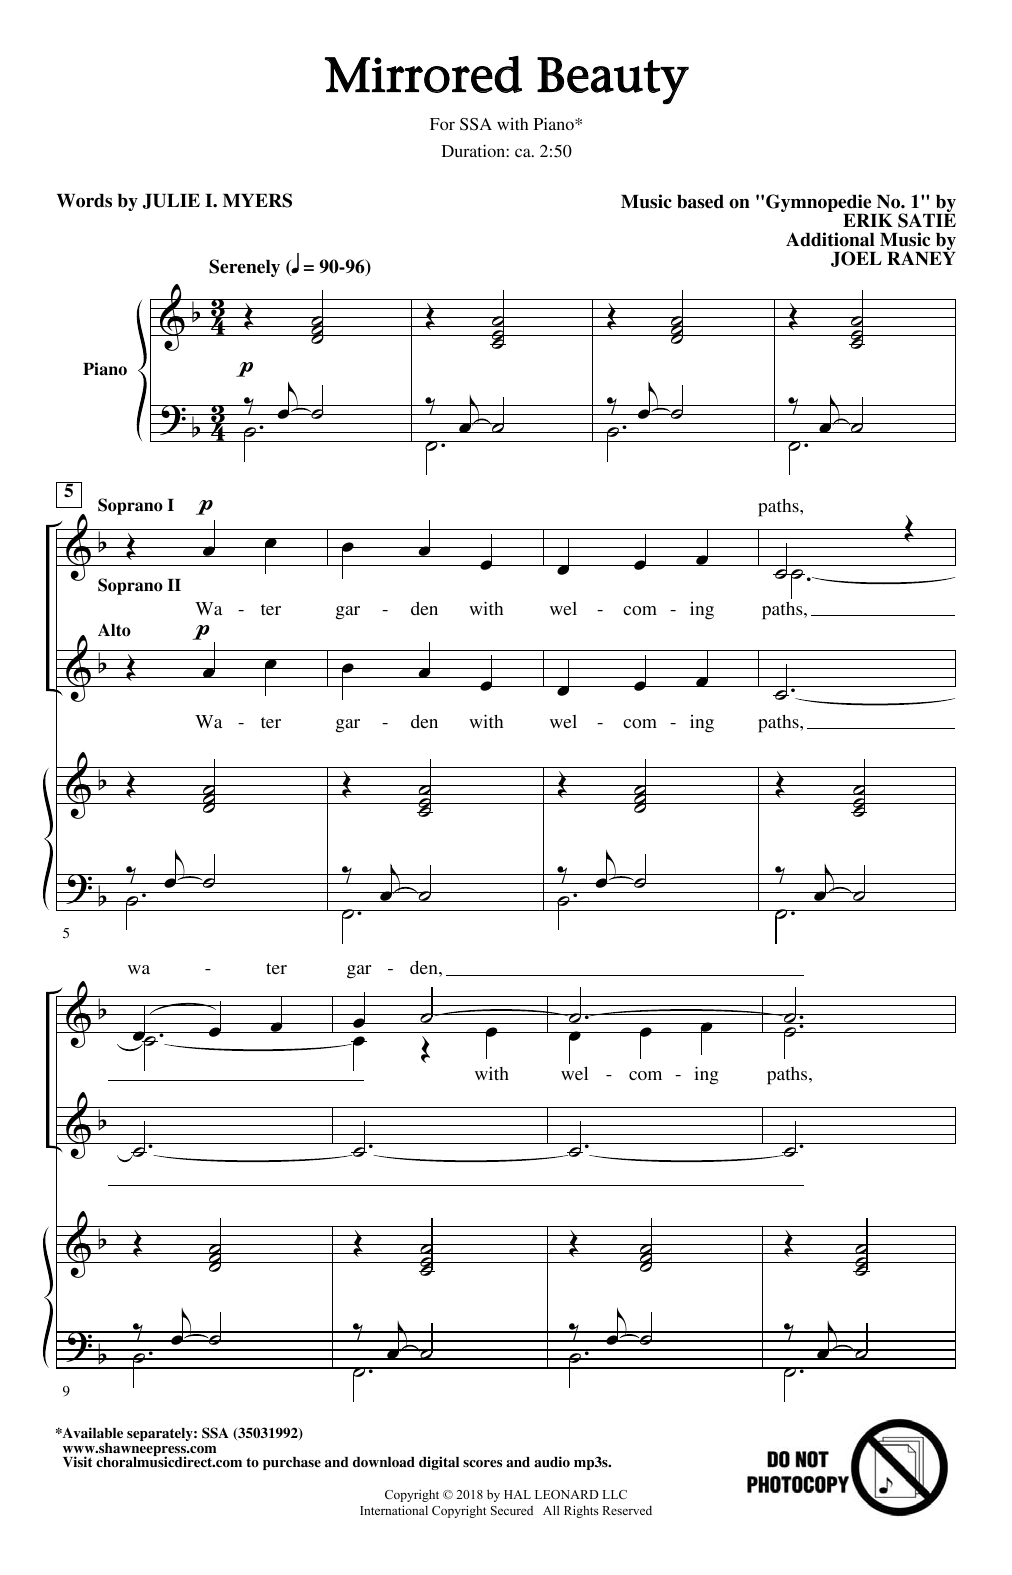 Mirrored Beauty Sheet Music